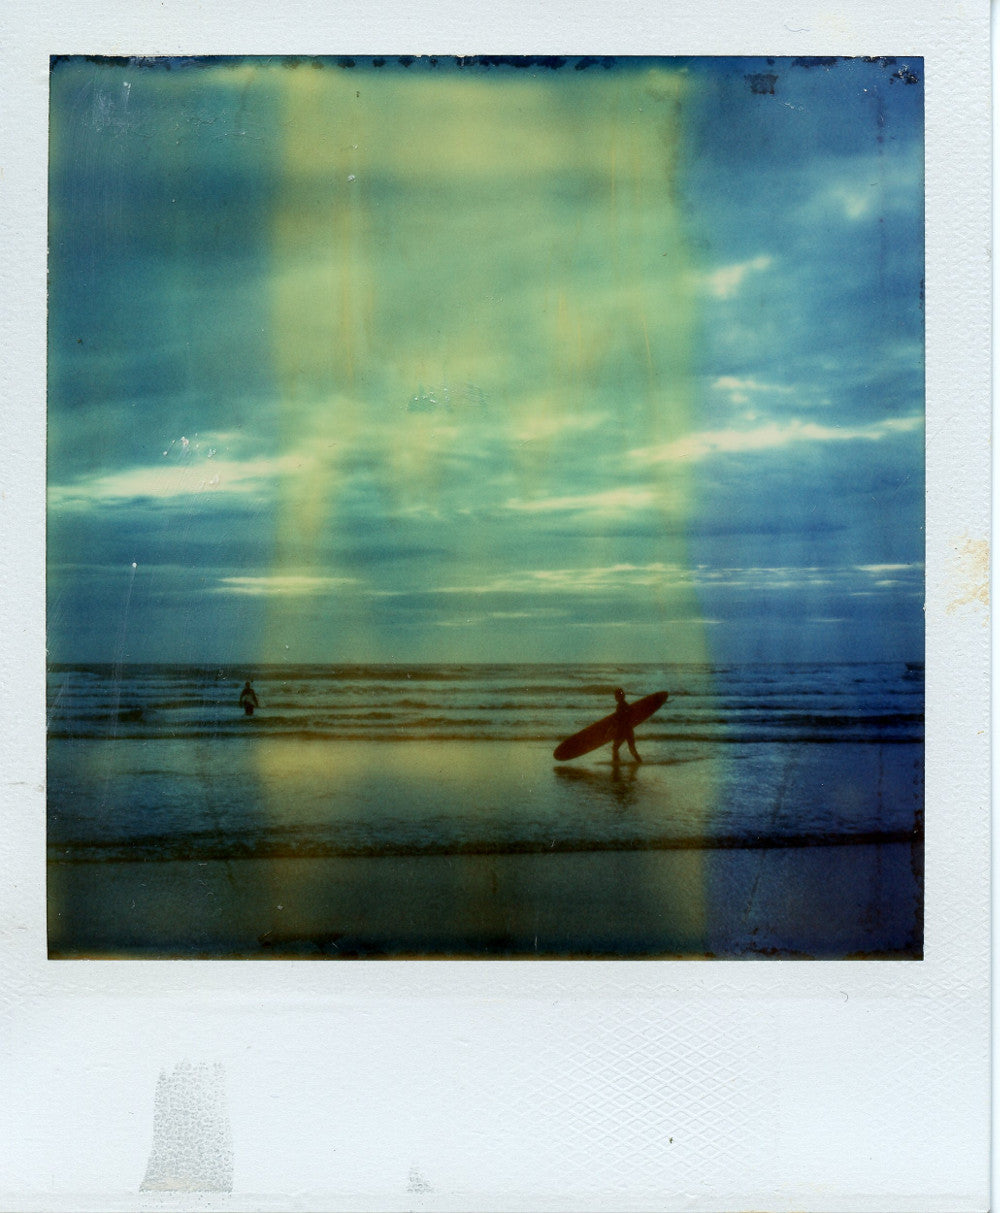 Polaroid photograph of a longboarder at Perranporth